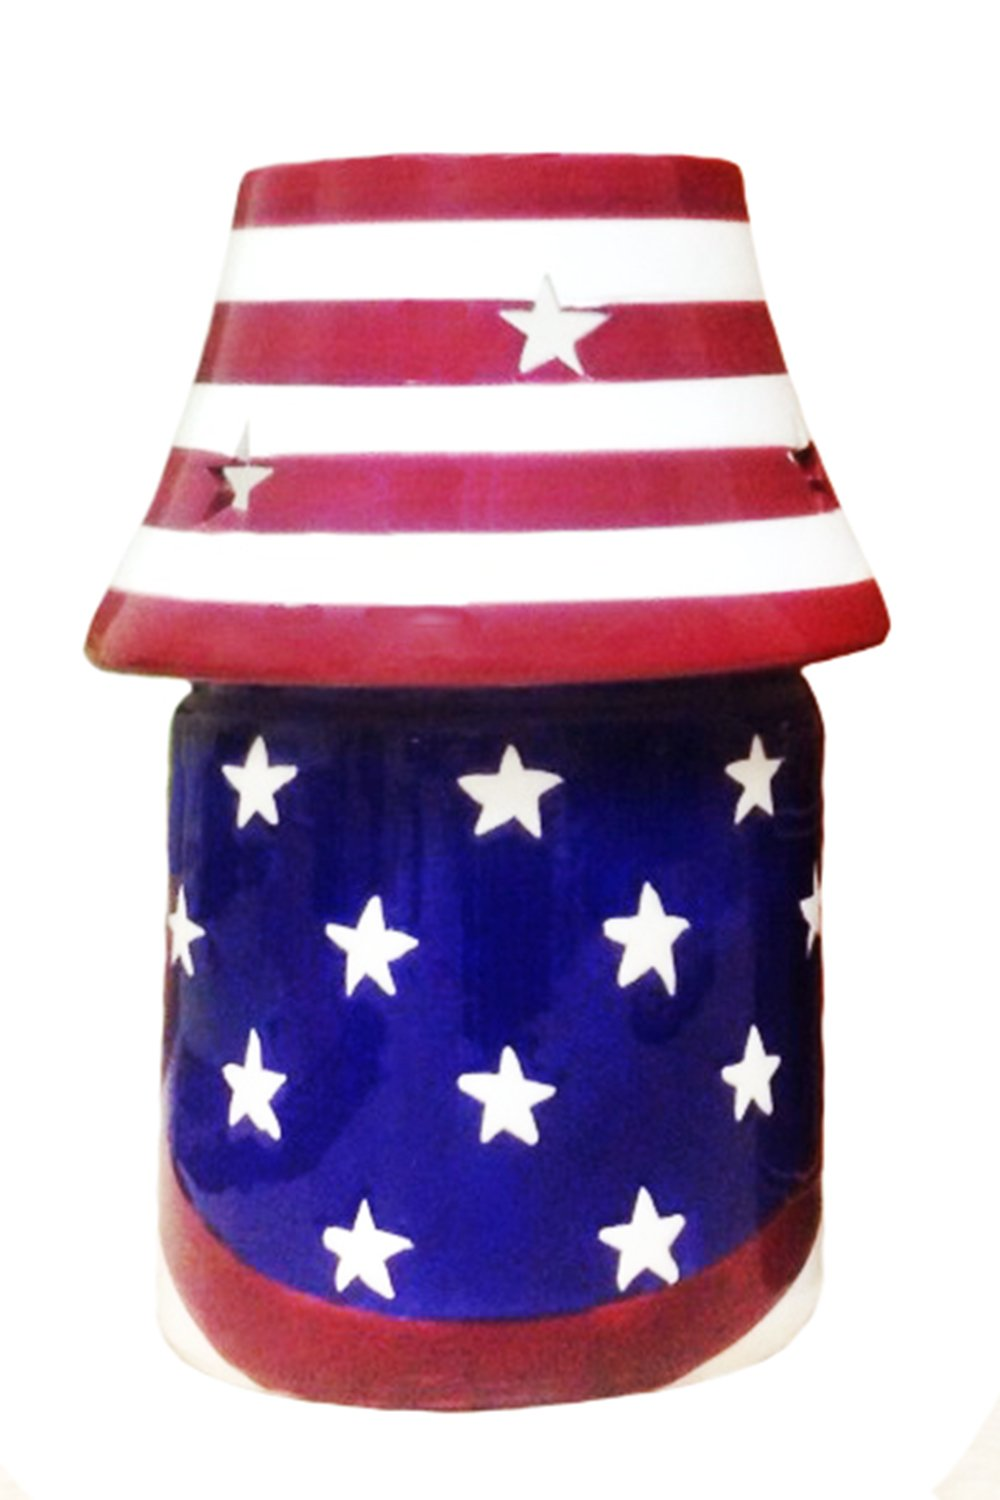 American Flag, Hand Painted Ceramic, Candle Jar Holder with Shade, 87941 By ACK by ACK